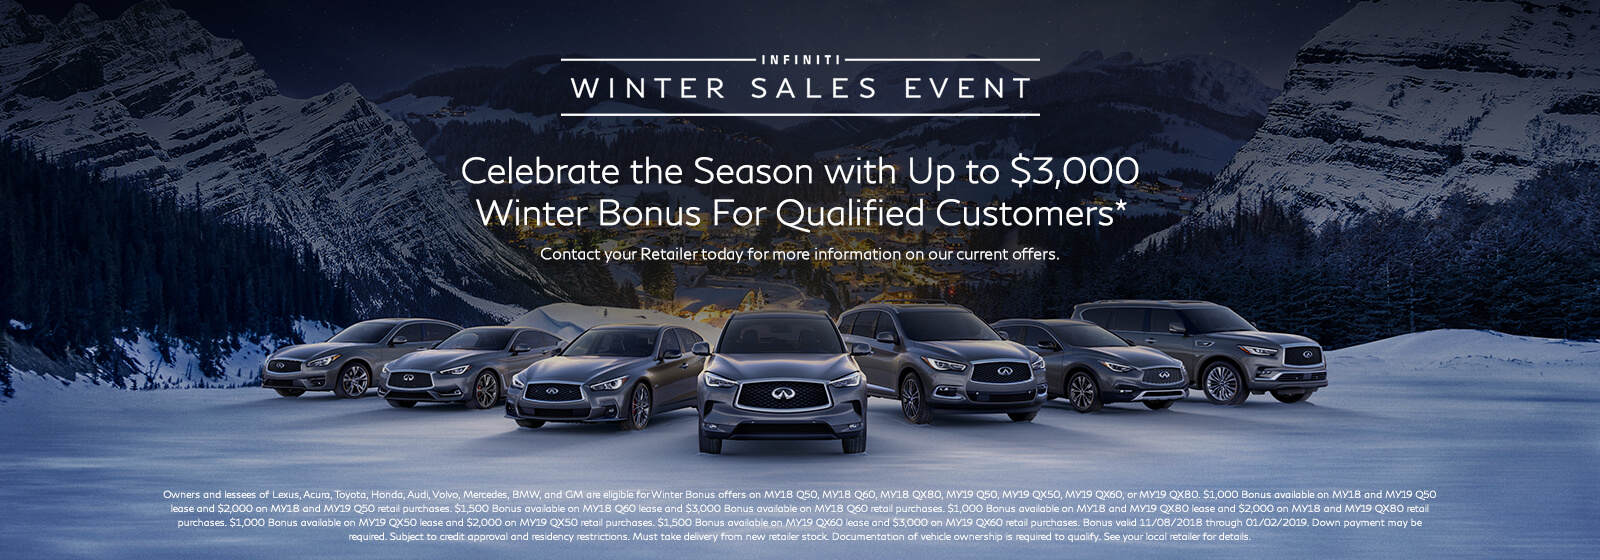 Winter Sales Event Bonus Updated